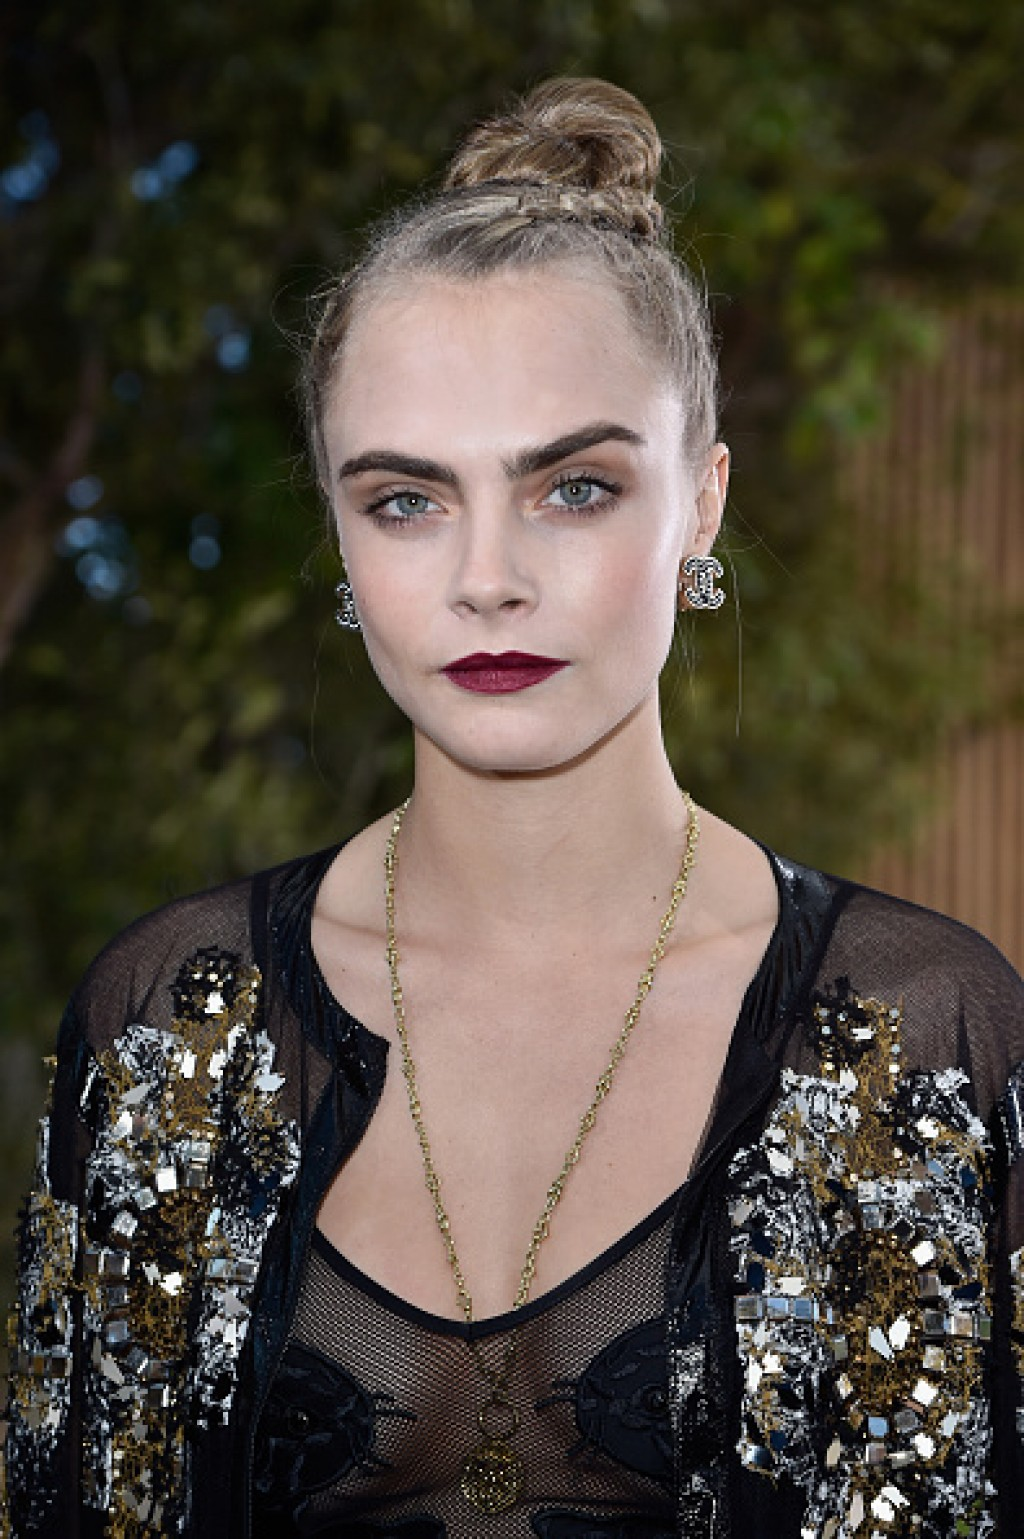 Chanel-Front-Row-Paris-Fashion-Week-Cara-Makeup-1024x1539